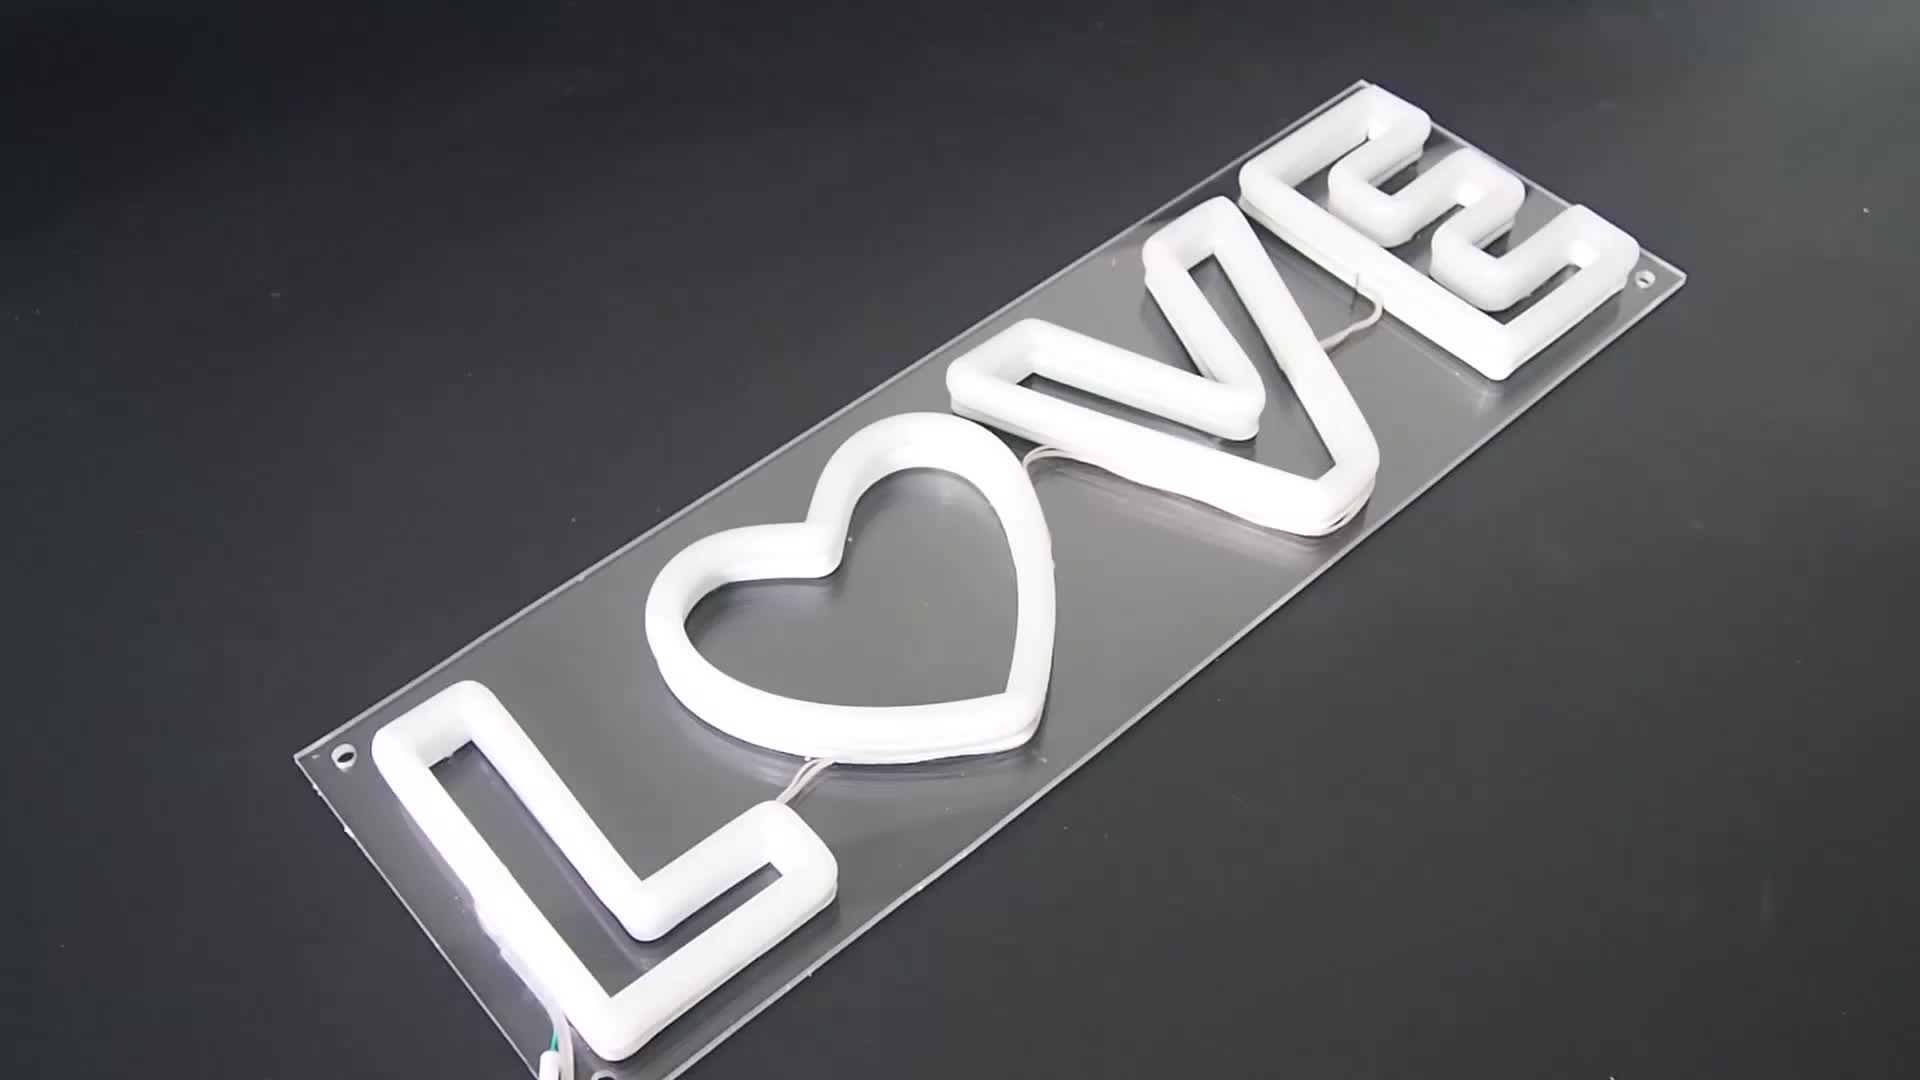 Advertising PVC and Acrylic 12v Led Decoration Neon Bar Sign